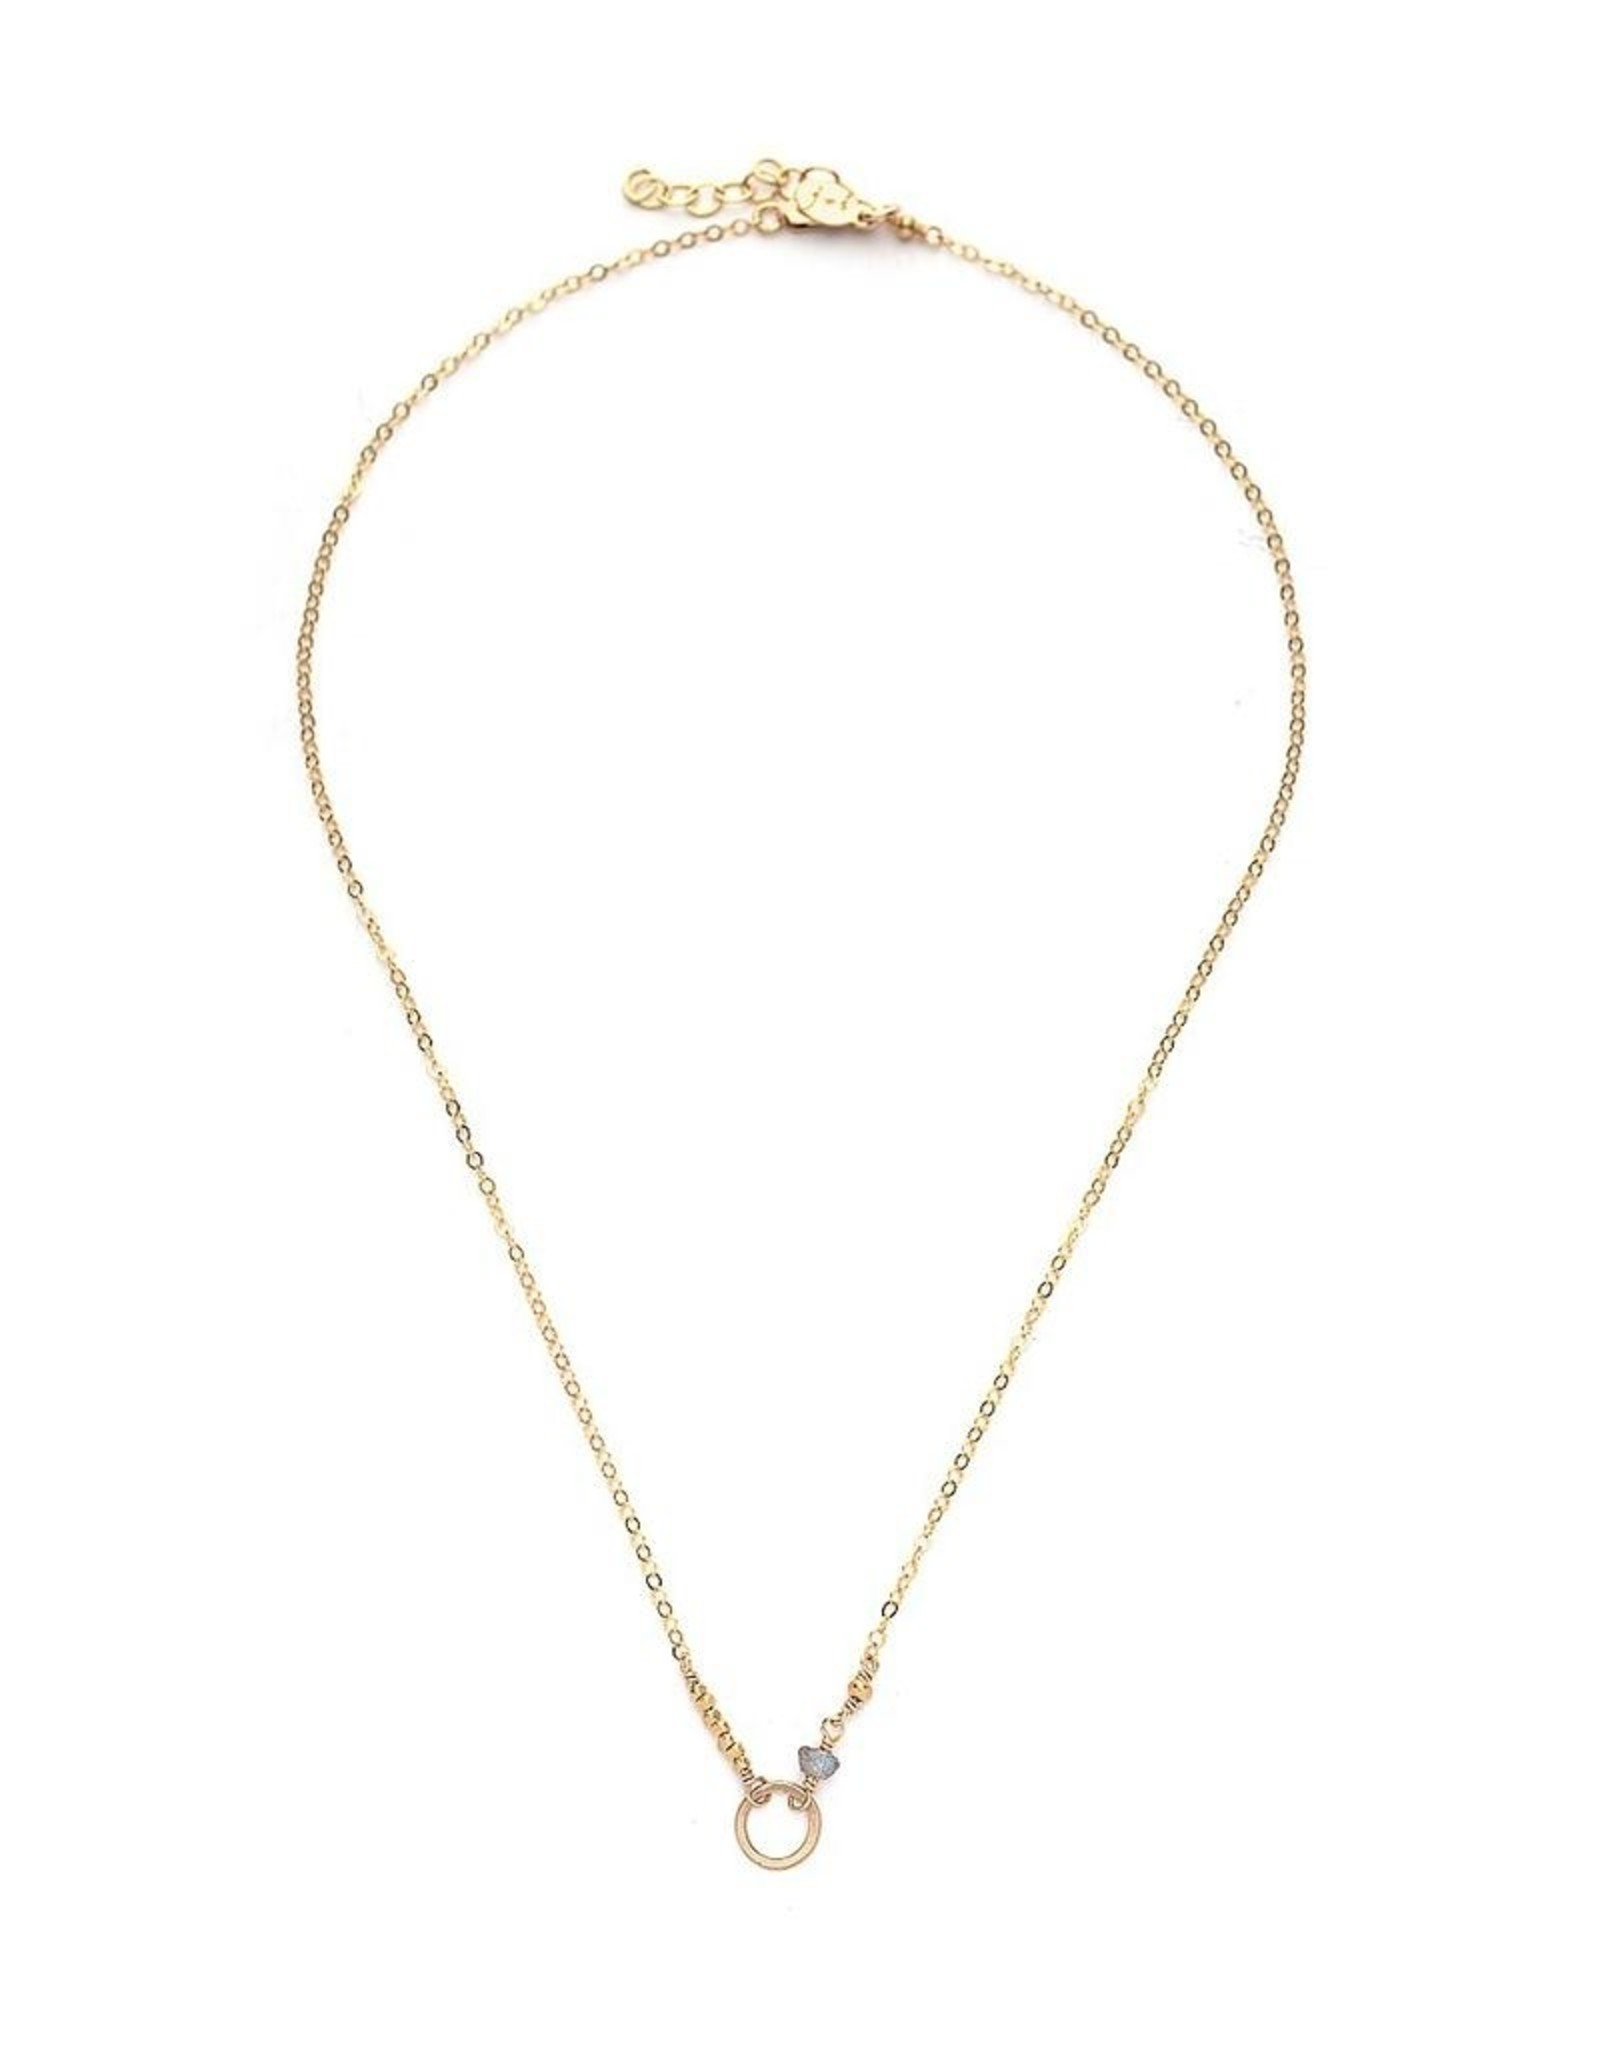 Handmade14kt Gold fill Necklace with Small Open Circle and 4mm Labradorite